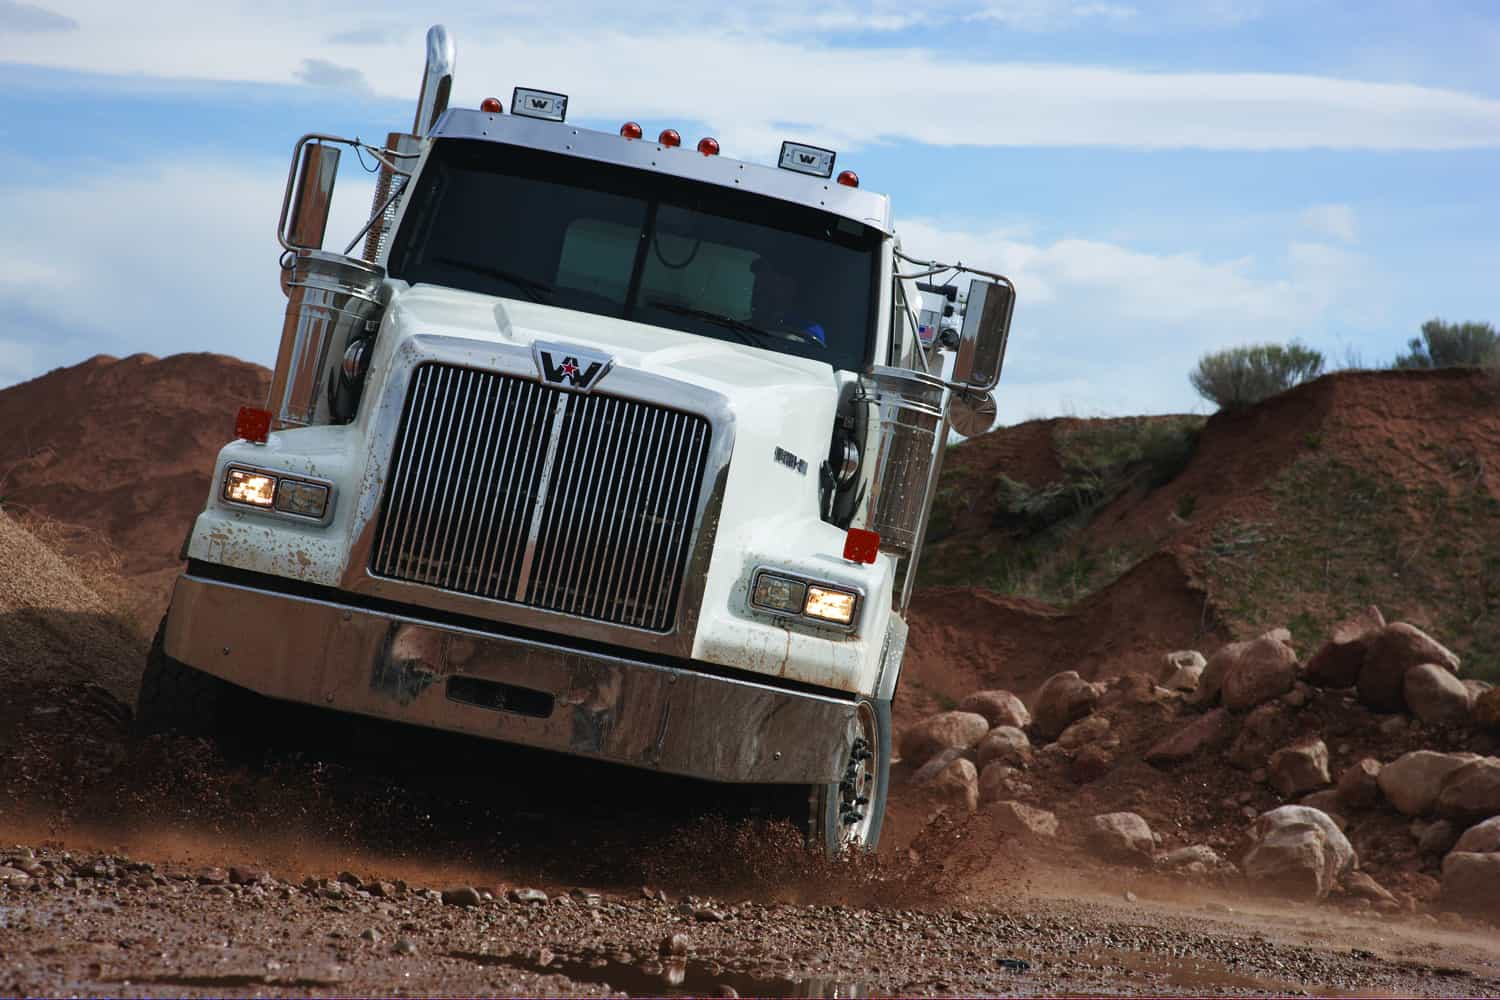 Western Star 4800, construction truck